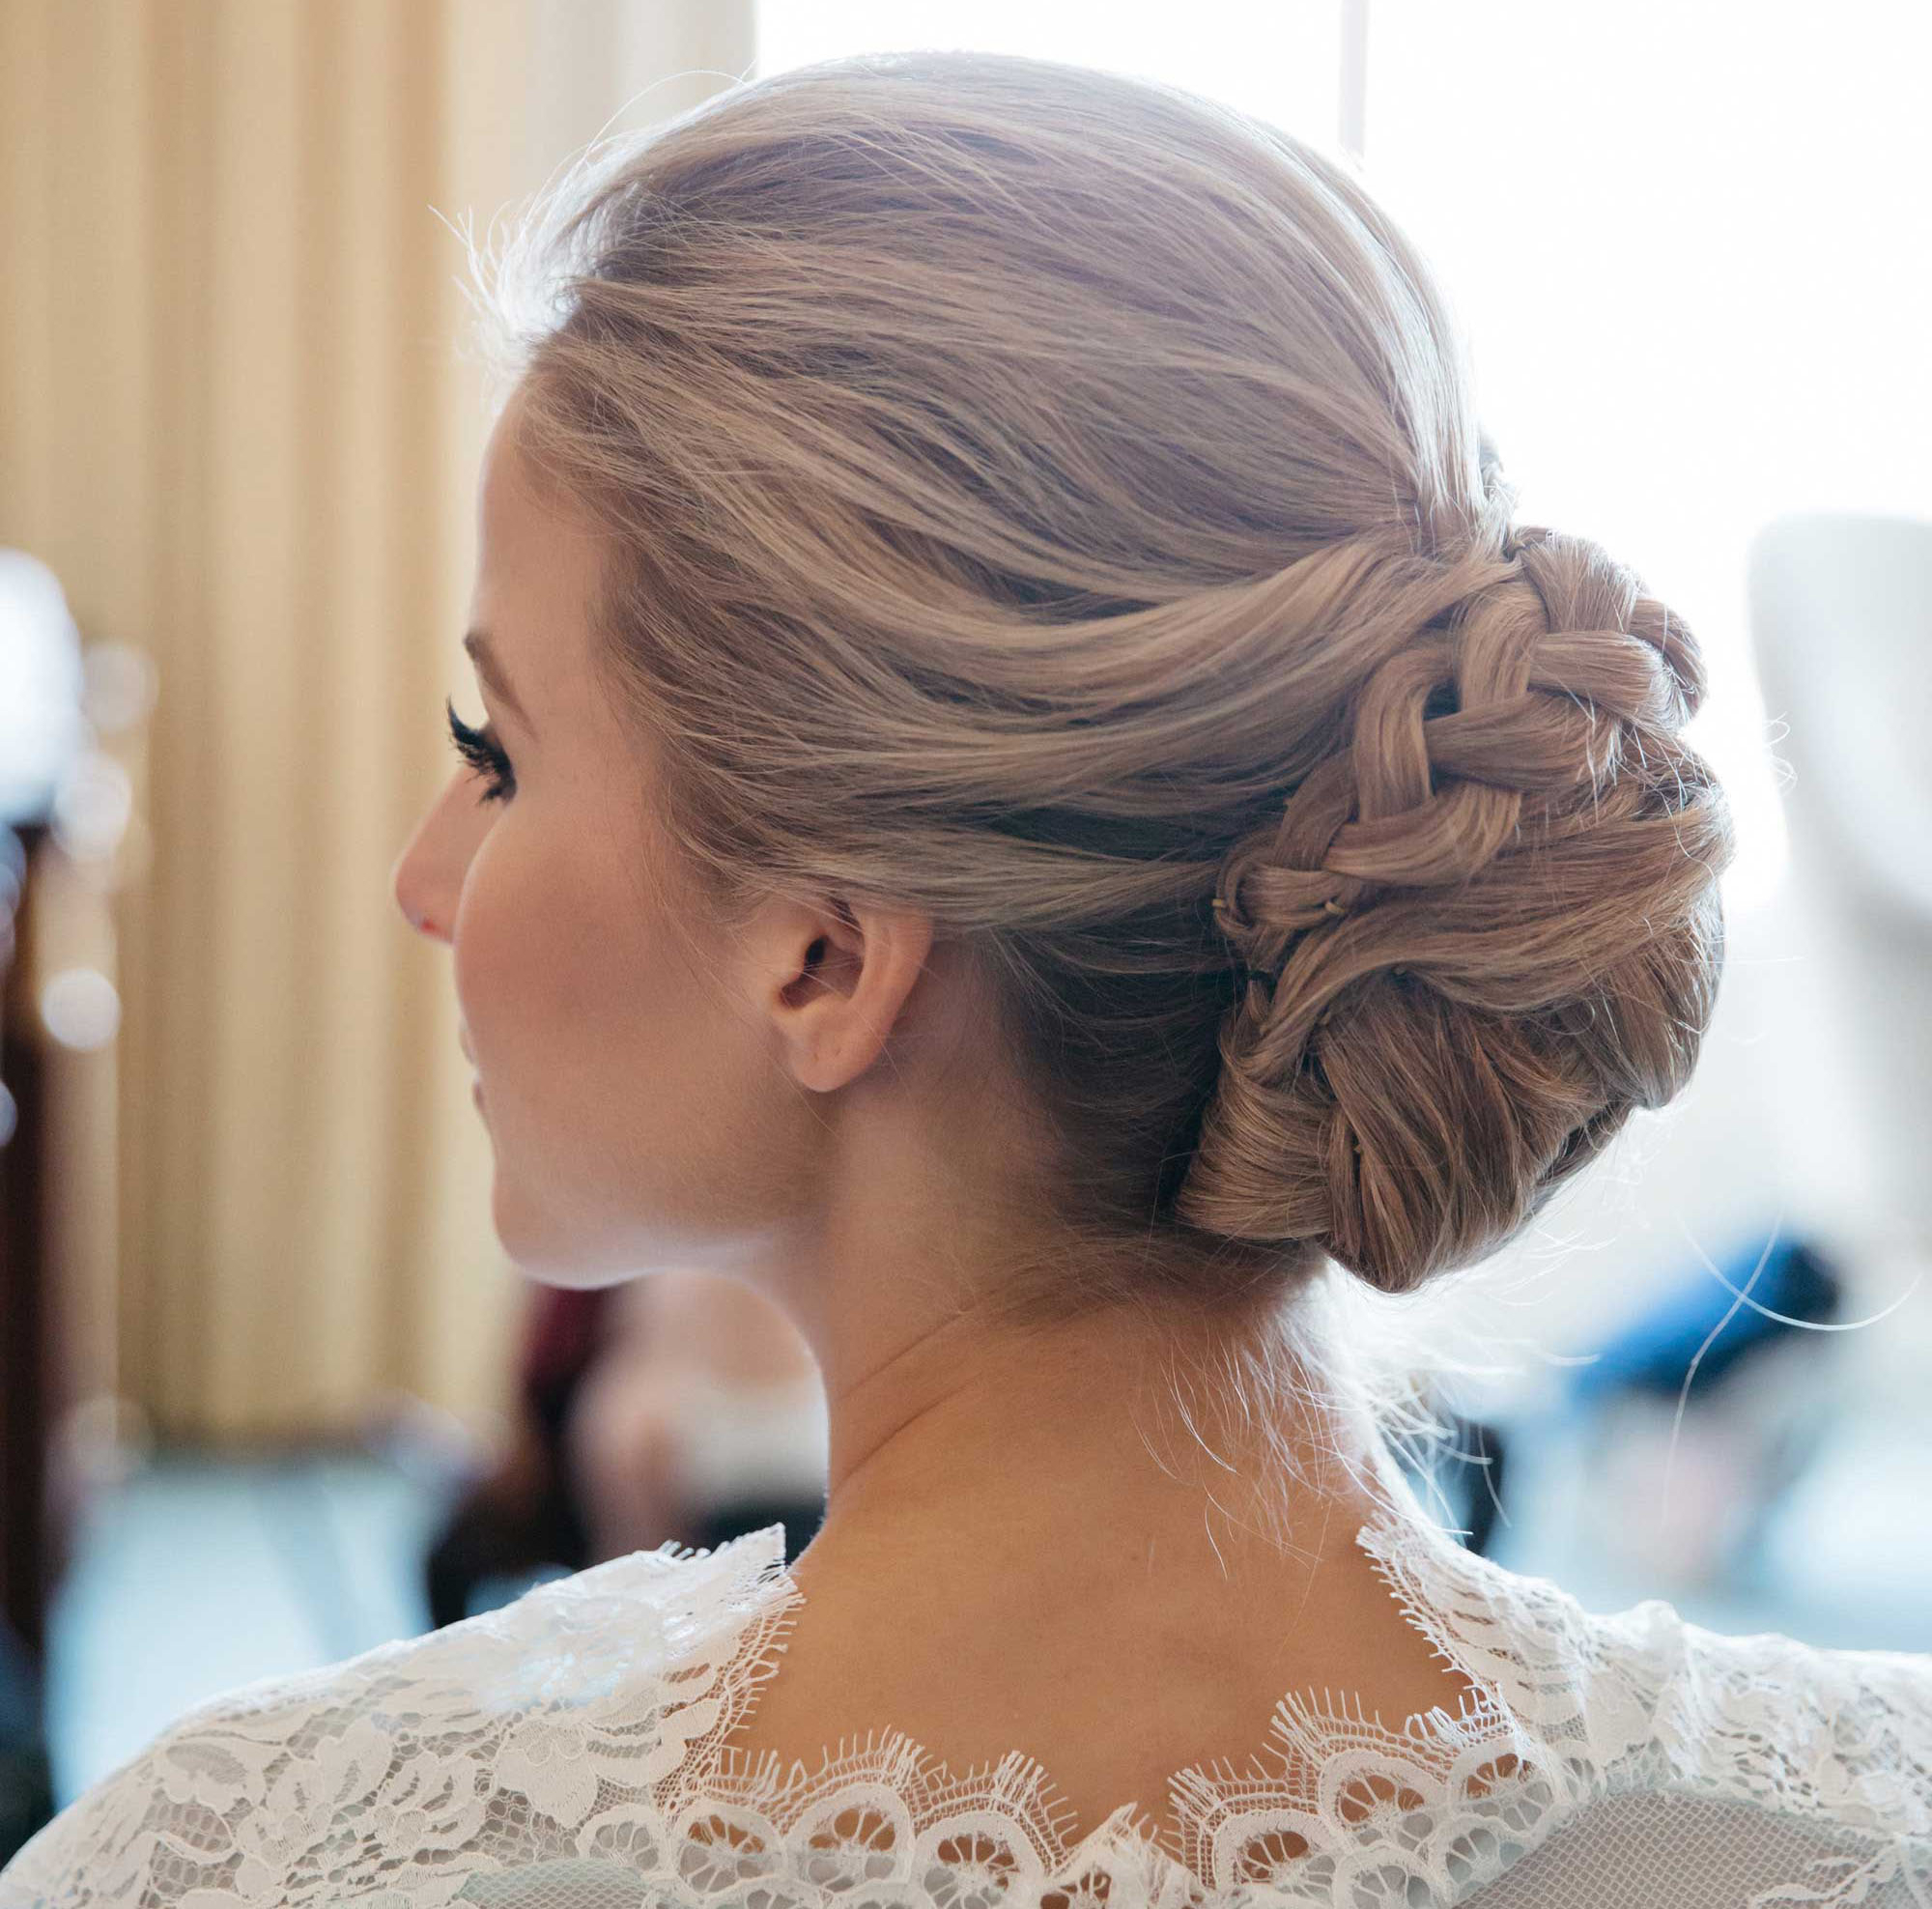 Braided Hairstyles: 5 Ideas For Your Wedding Look – Inside Regarding Most Current Wedding Braided Hairstyles (View 9 of 20)